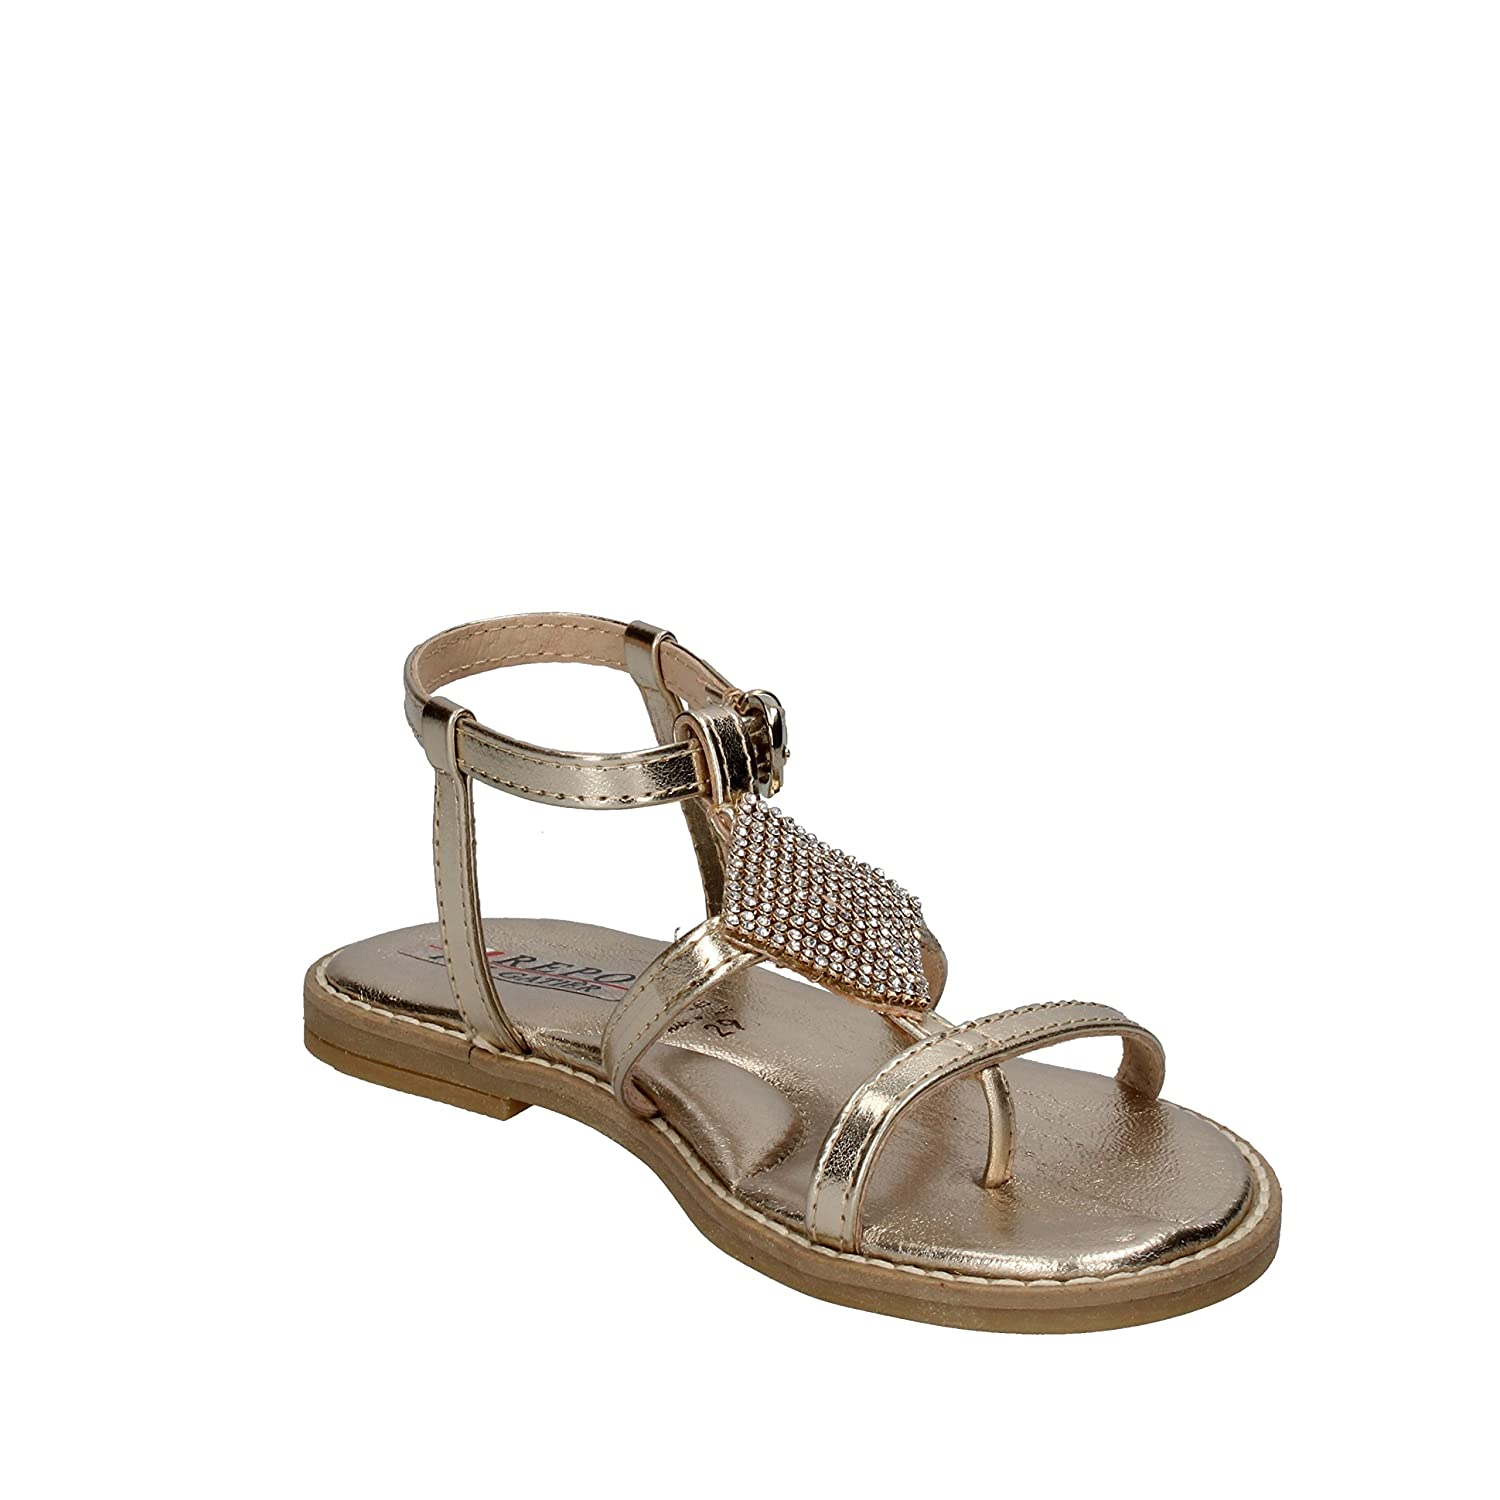 Phil Gatier By Repo Sandals Baby-Girls Leather Silver